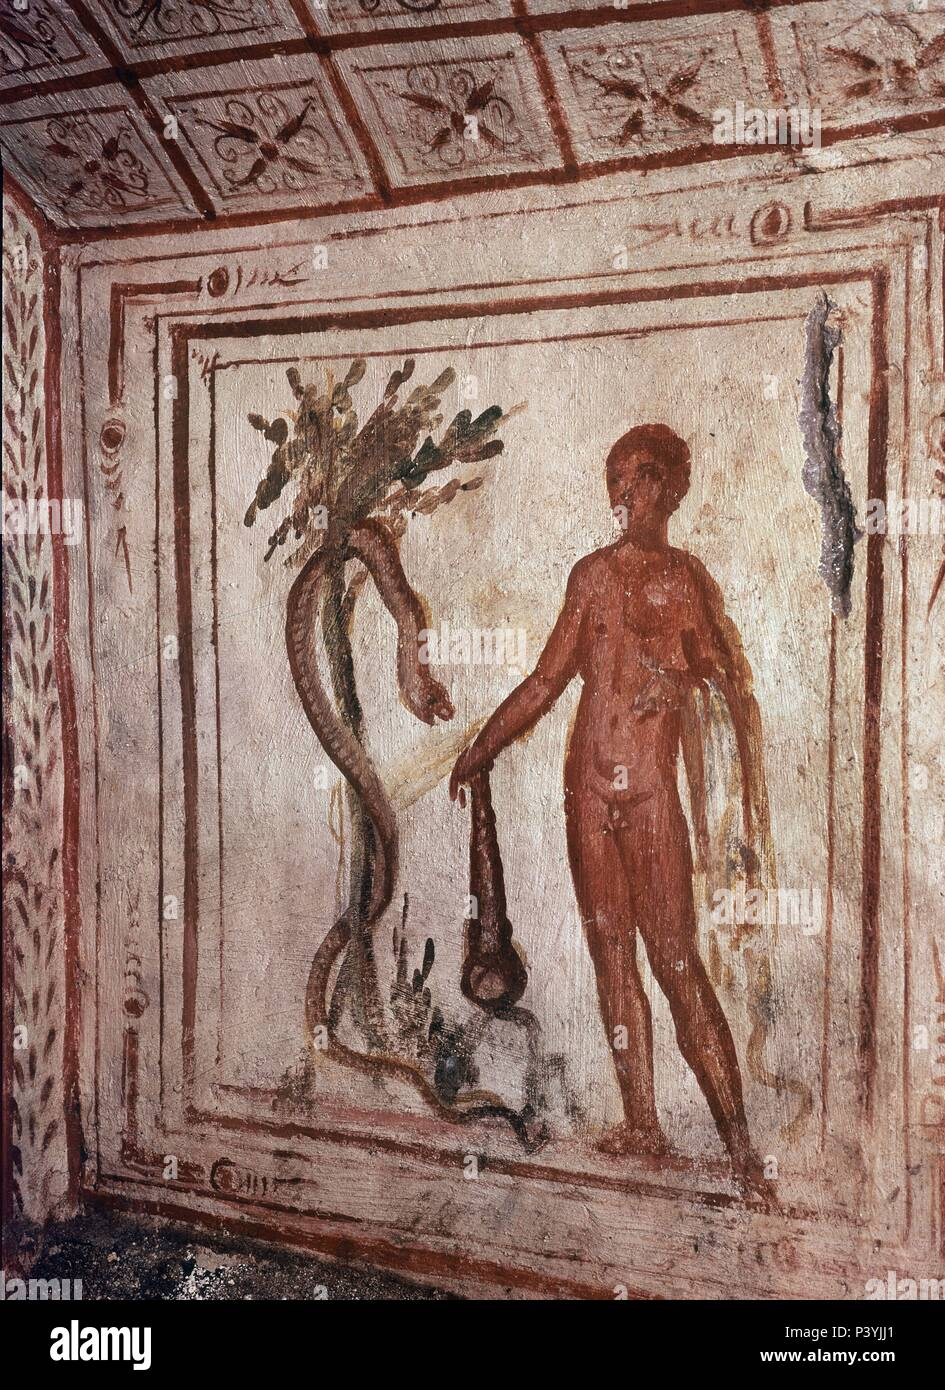 Heracles Painting Stock Photos & Heracles Painting Stock ...